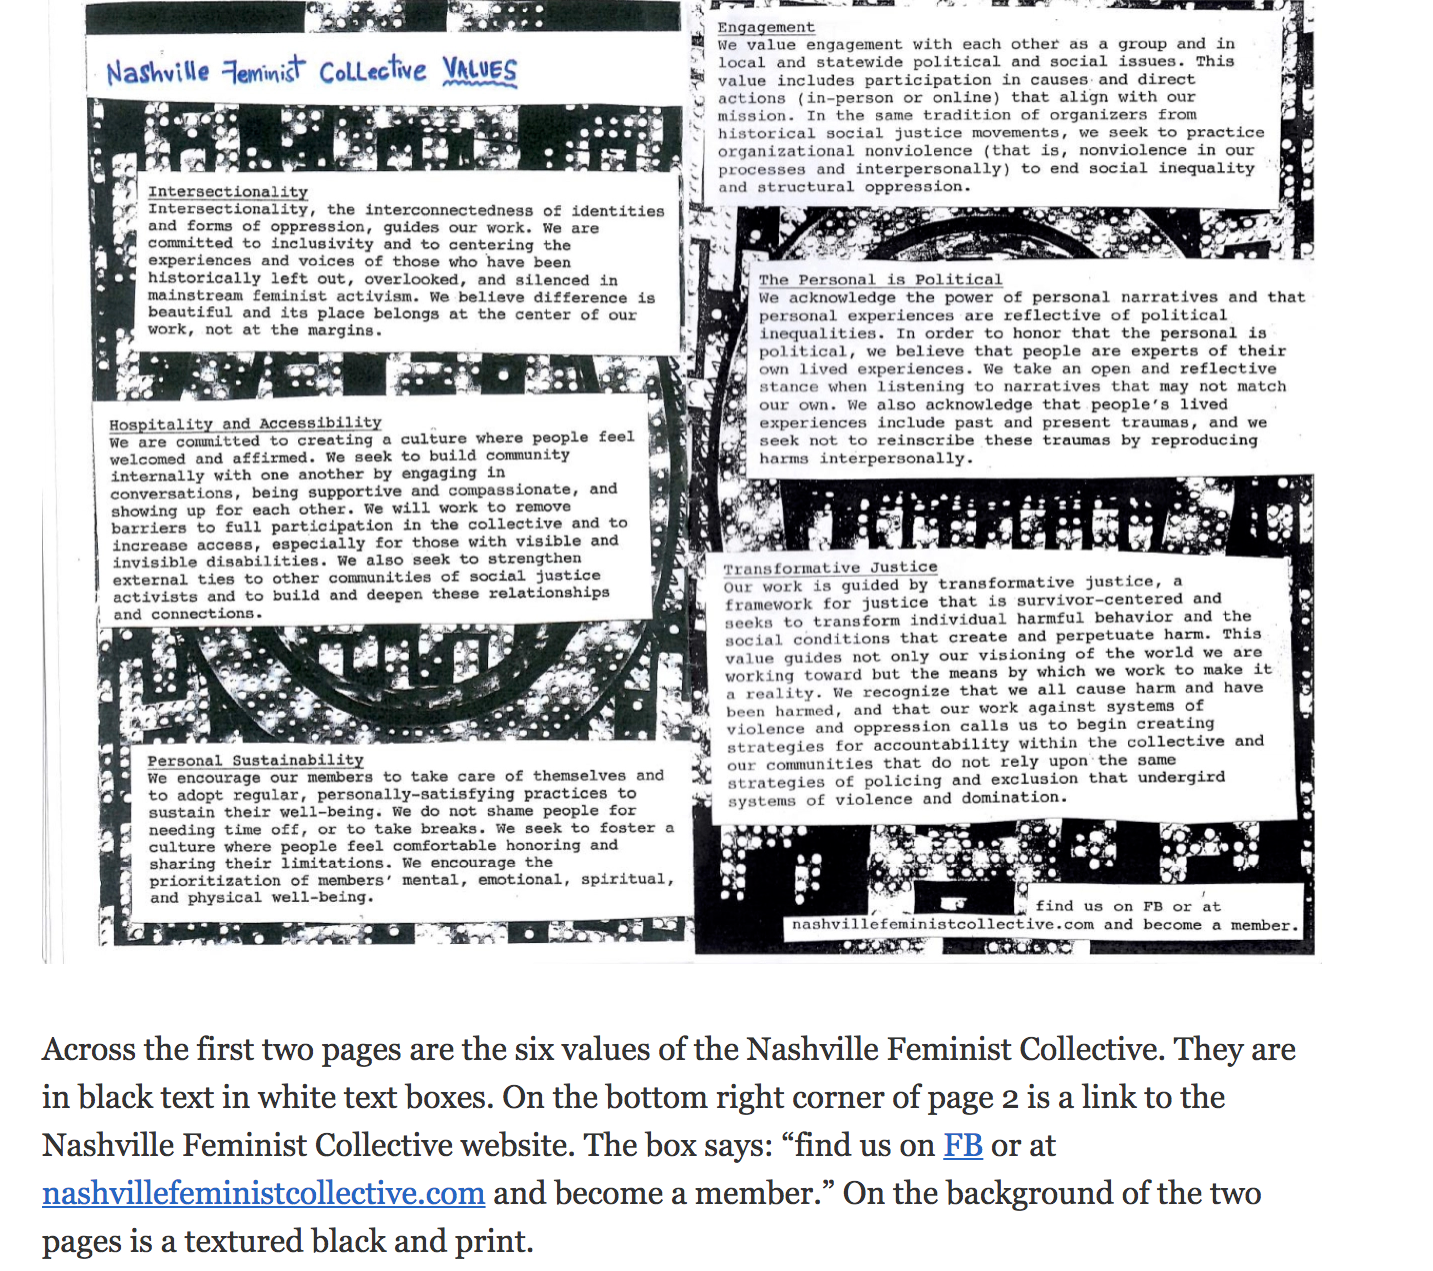 """This is an image of a hand-made zine with text, posted on a website, with the following image description below it:Across the first two pages are the six values of the Nashville Feminist Collective. They are in black text in white text boxes. On the bottom right corner of page 2 is a link to the Nashville Feminist Collective website. The box says: """"find us on  FB or at  nashvillefeministcollective.com and become a member.""""On the background of the two pages is a textured black and print."""